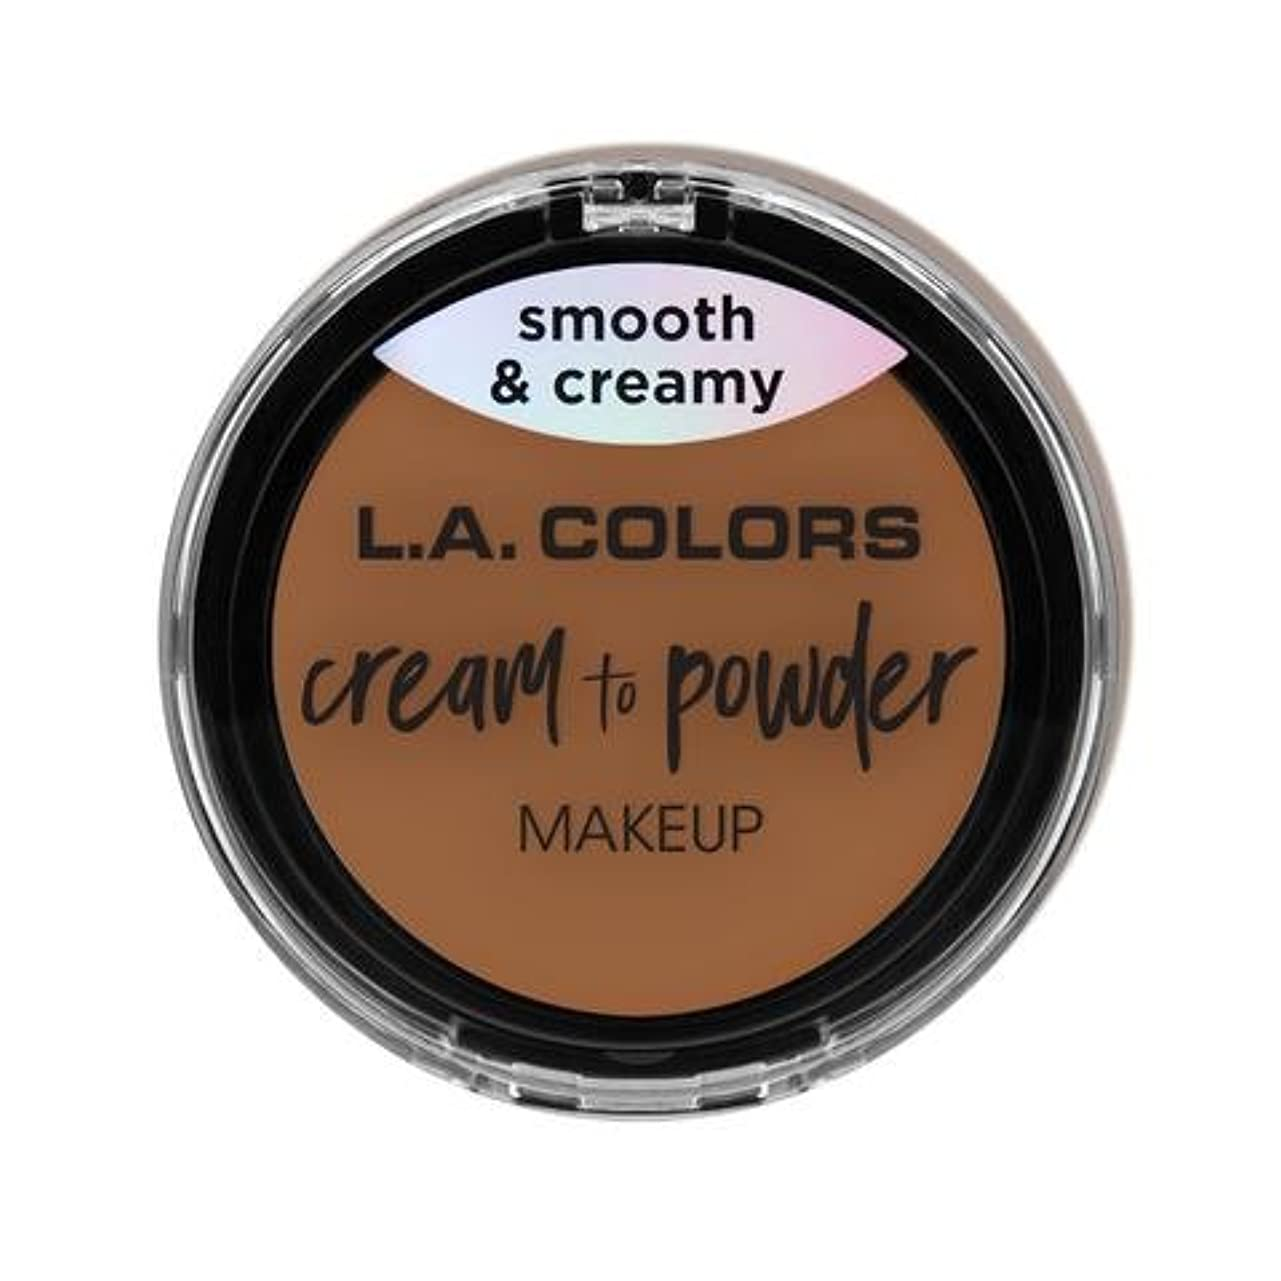 十二宝みすぼらしい(3 Pack) L.A. COLORS Cream To Powder Foundation - Sand (並行輸入品)